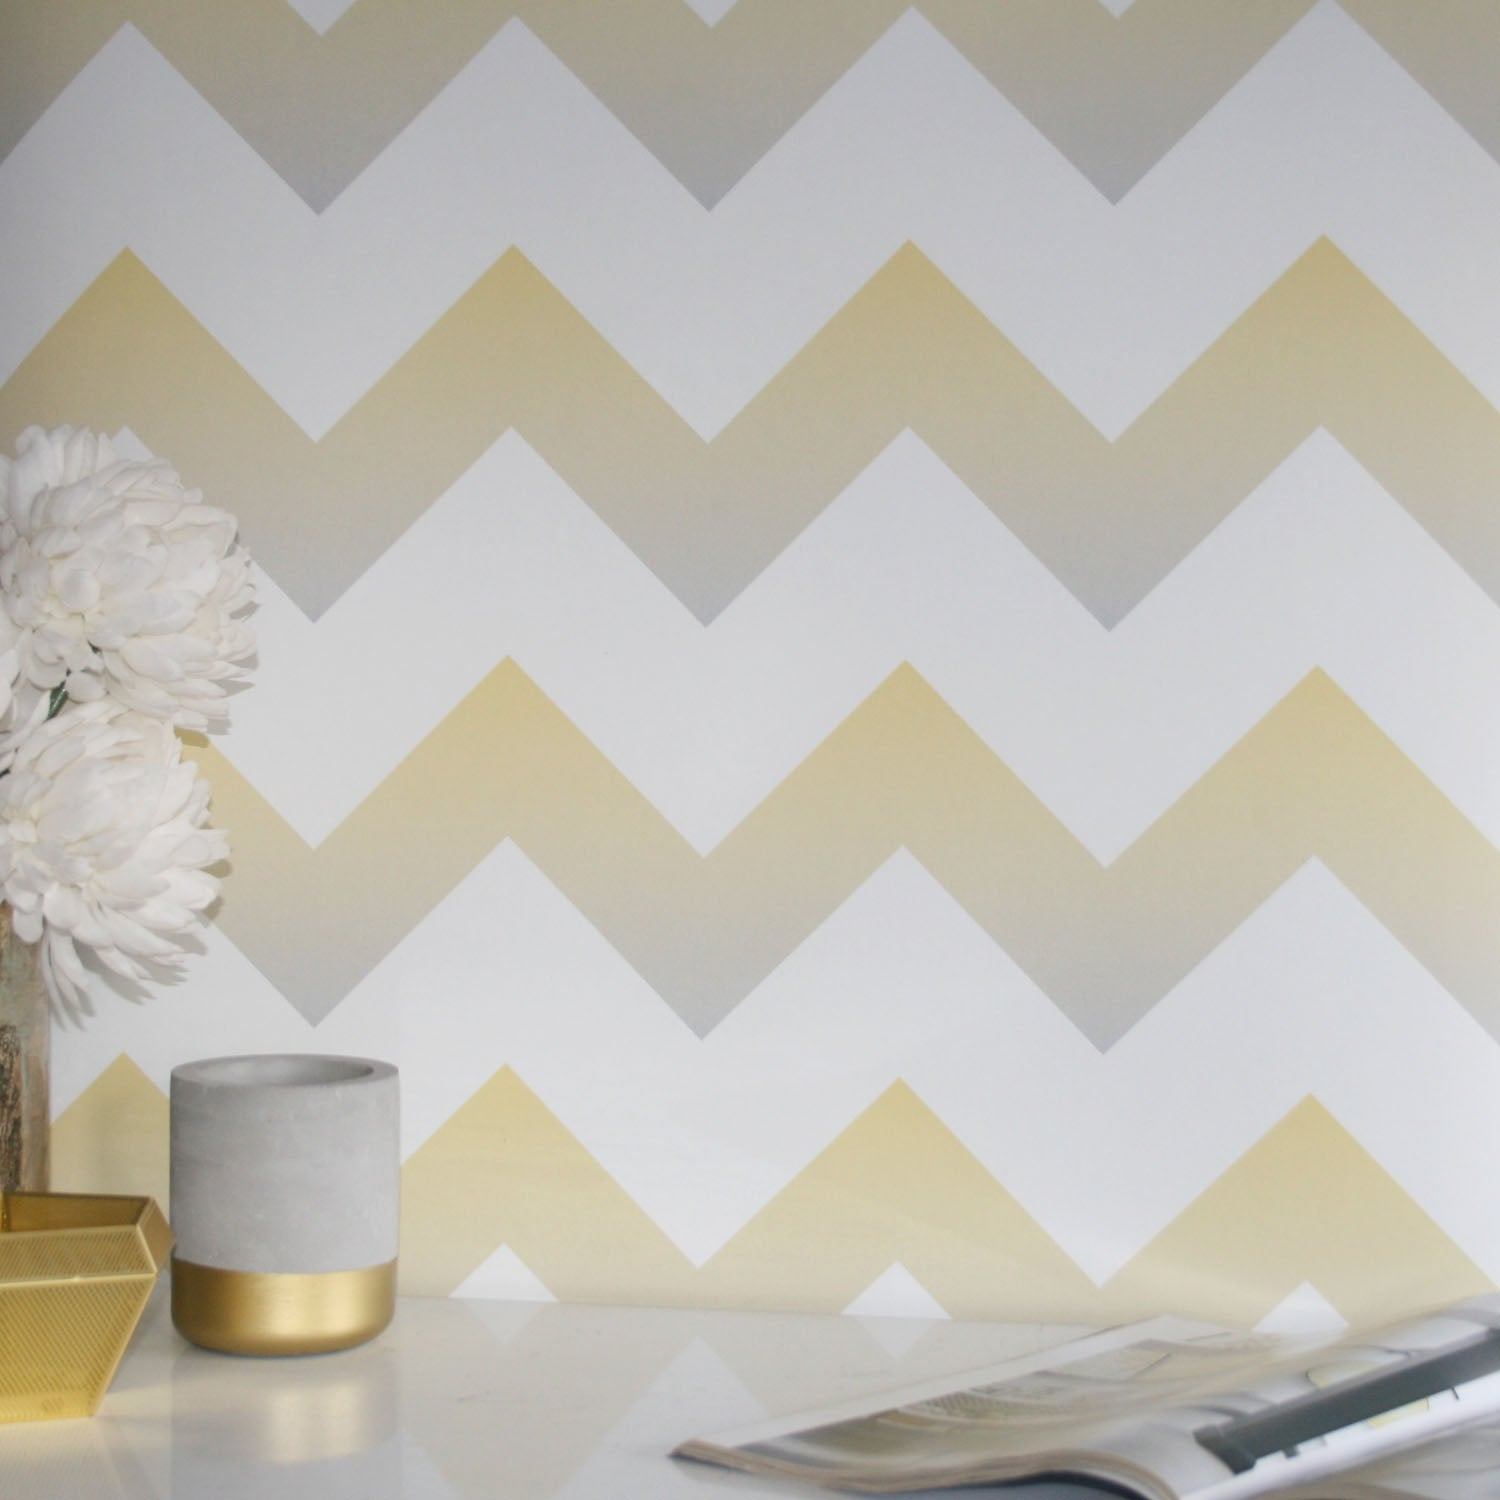 Ziggy |Geometric Ombre Zig Zag Wallpaper in Yellow, Grey & White